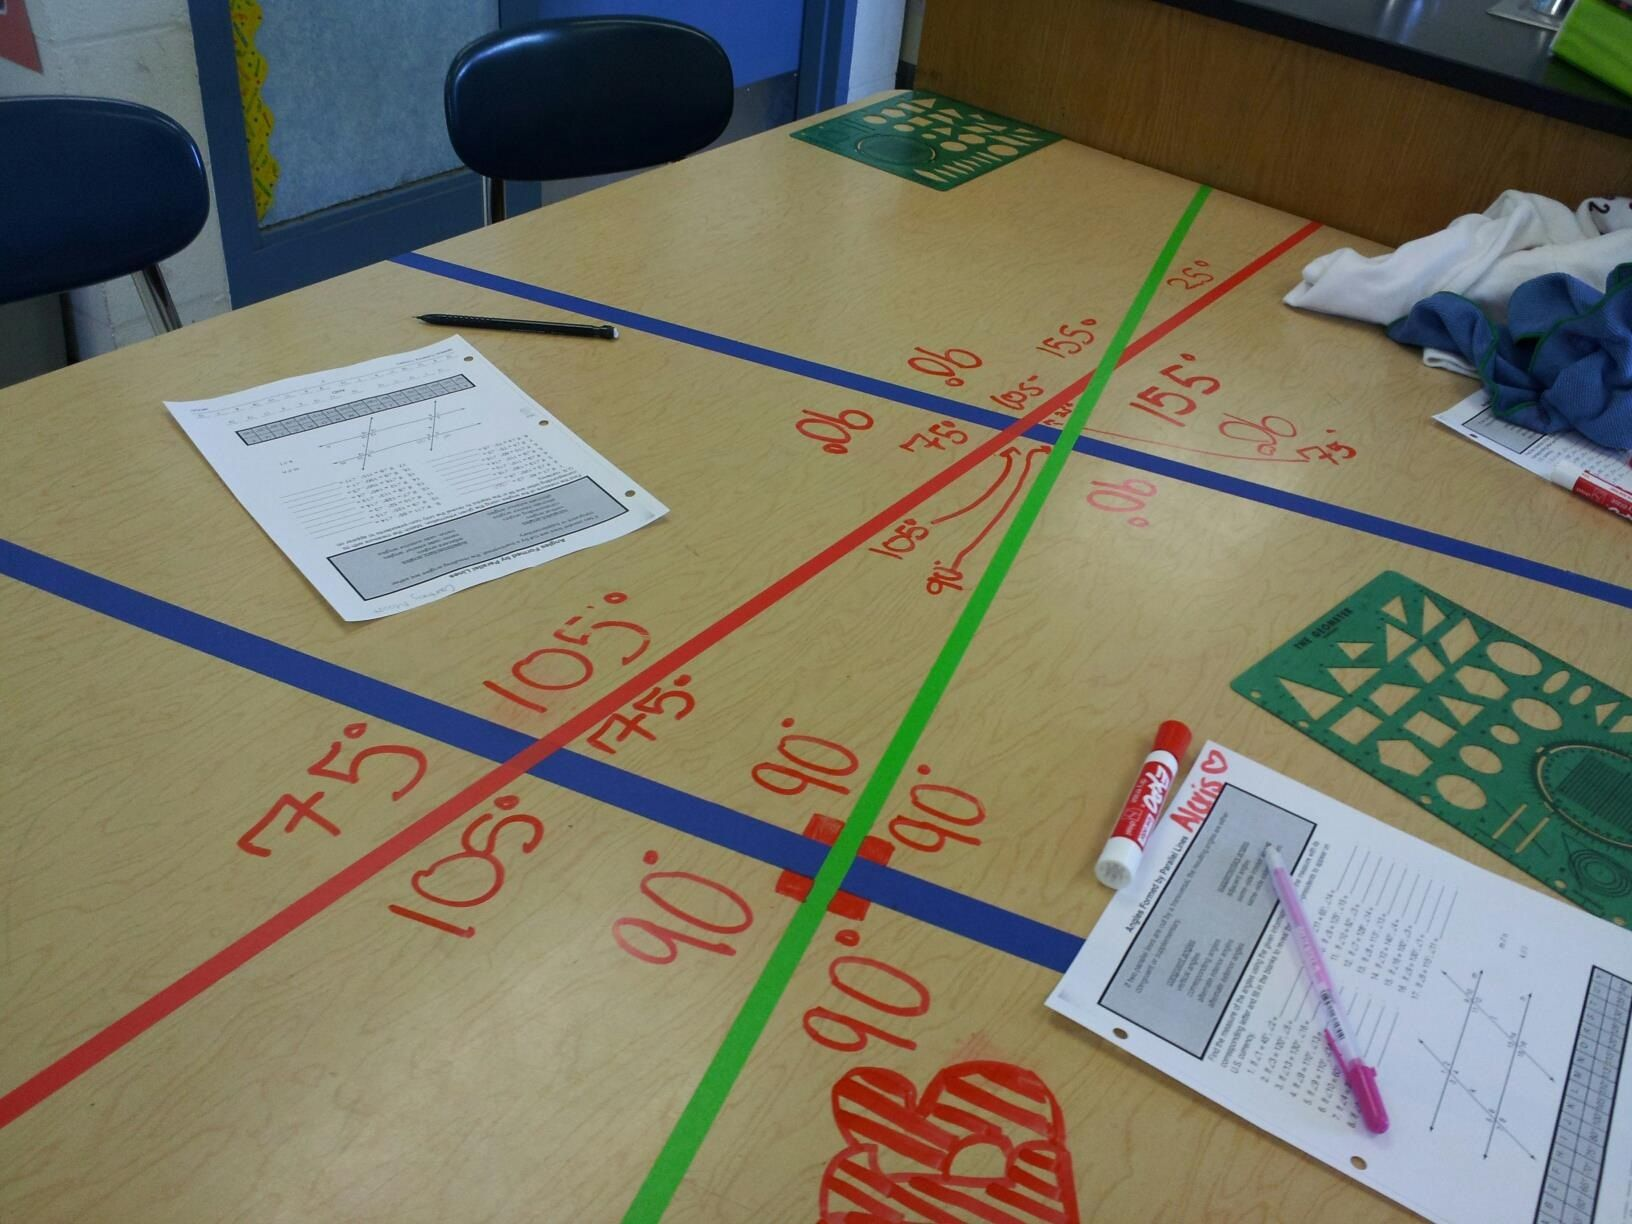 A Great Way To Practice Measuring Angles Tape Up Desks